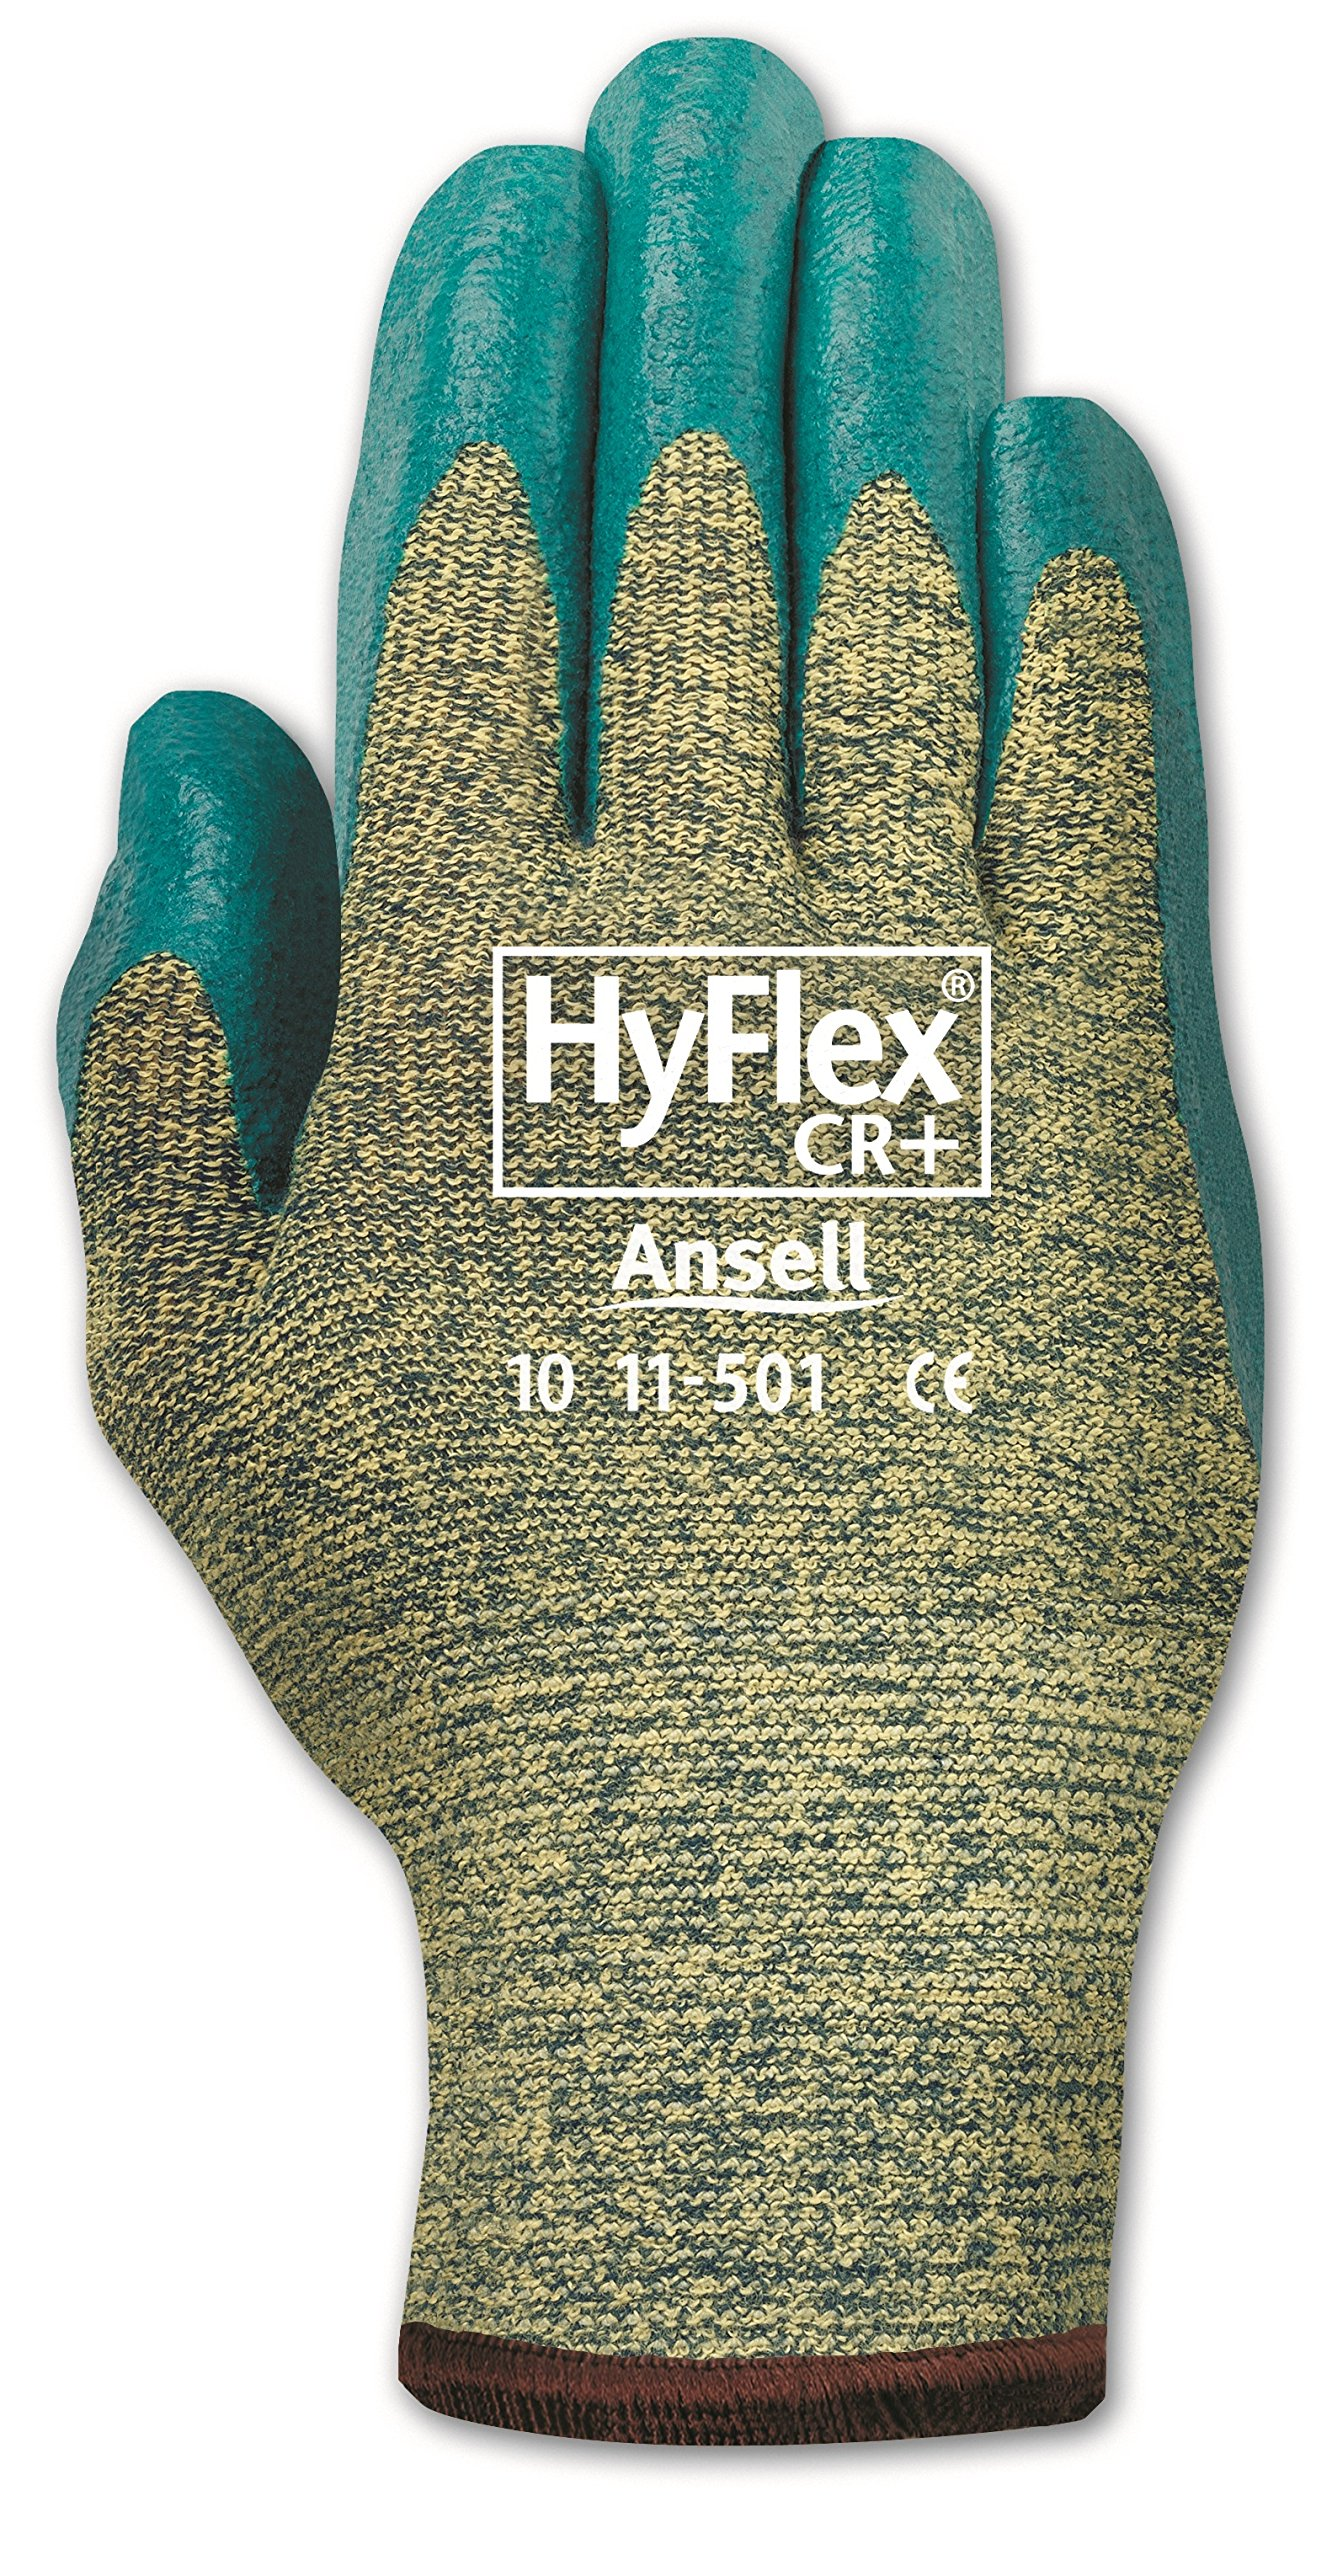 Ansell HyFlex 11-501 Kevlar Glove, Cut Resistant, Blue Foam Nitrile Coating, Knit Wrist Cuff, Small, Size 7 (Pack of 12) by Ansell (Image #3)